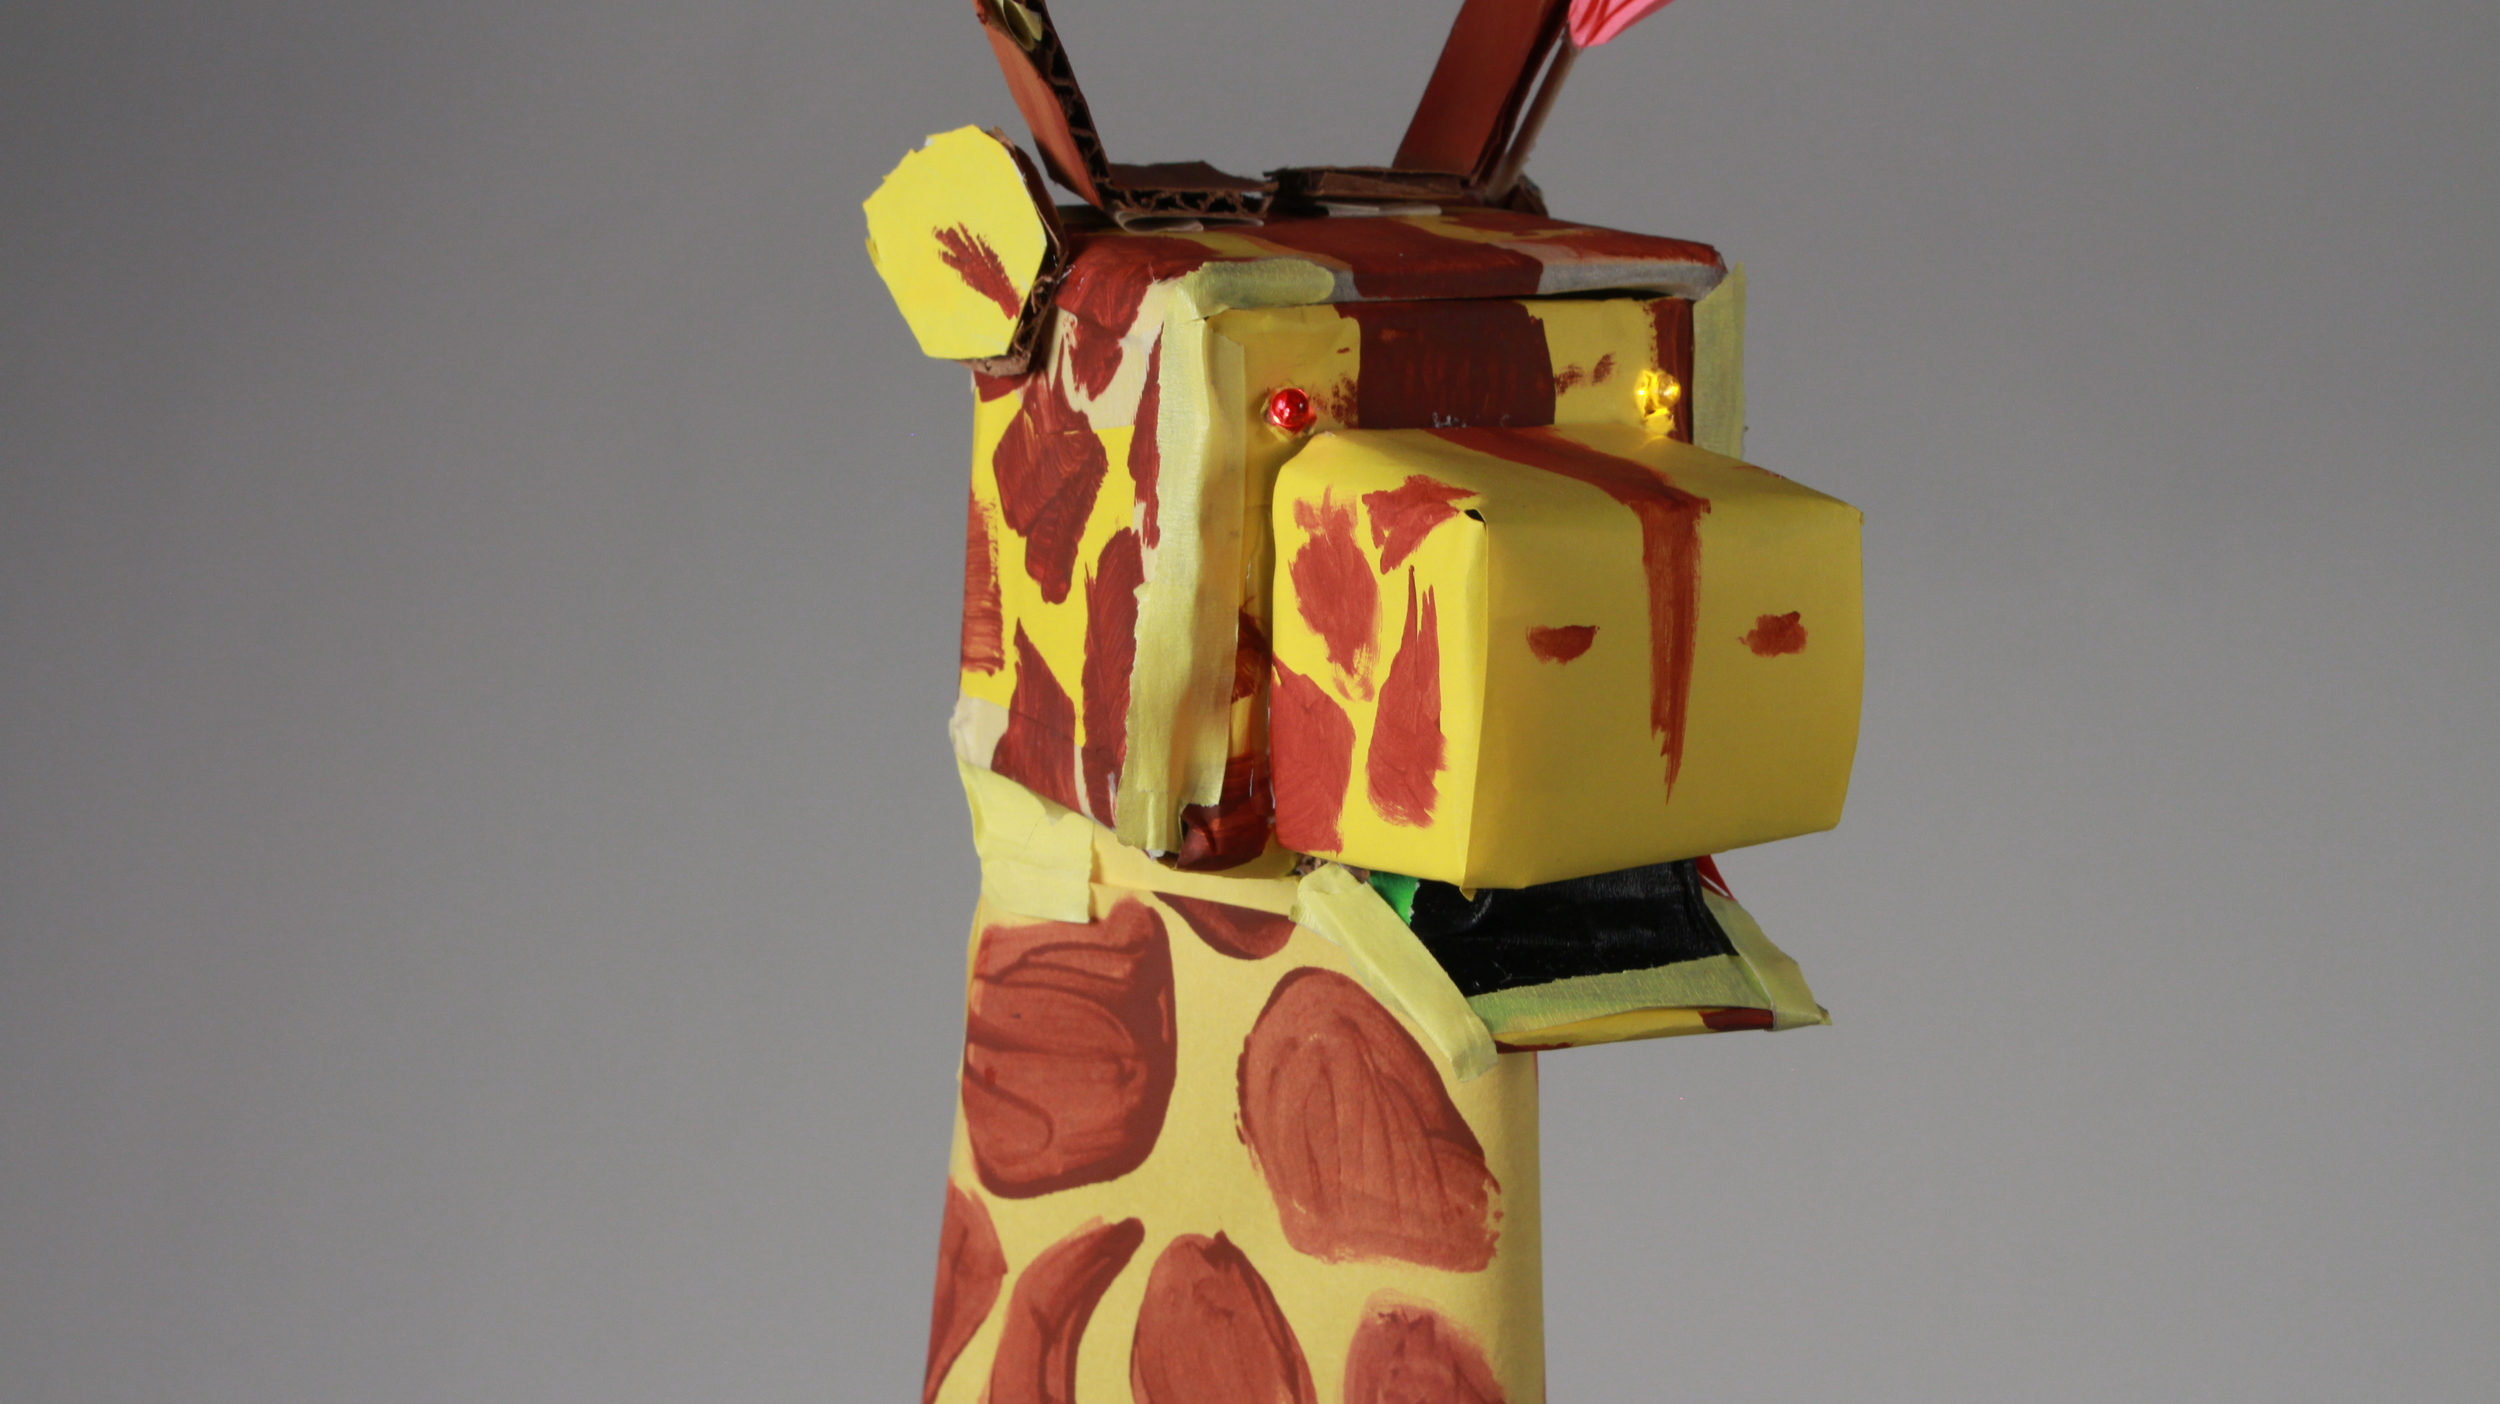 Giraffe. Designed by Connie, Dorothy & Kyra